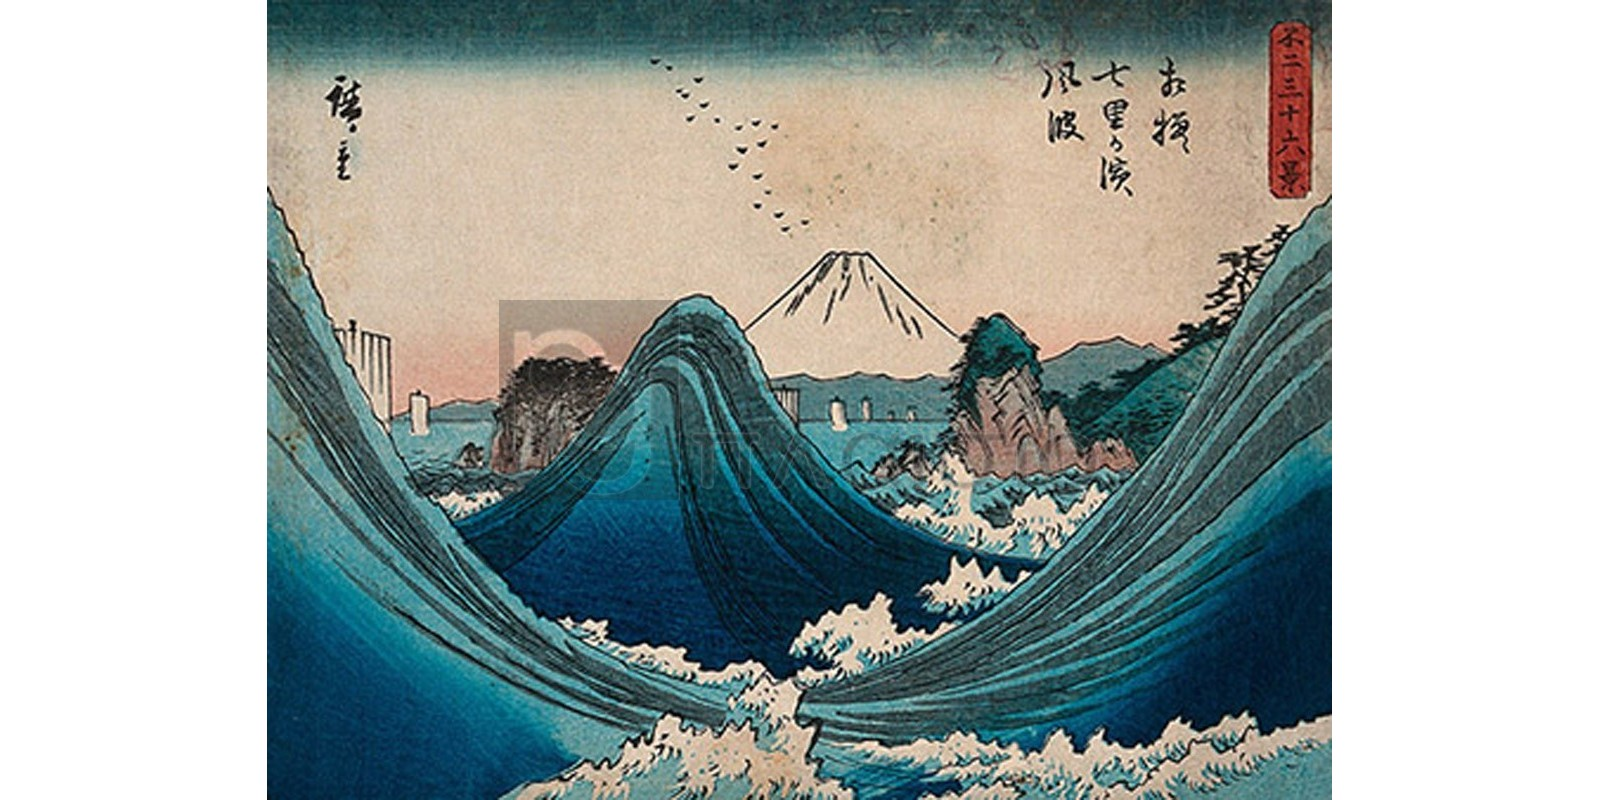 ANDO HIROSHIGE - Mount Fuji seen through the waves at Manazato no hama